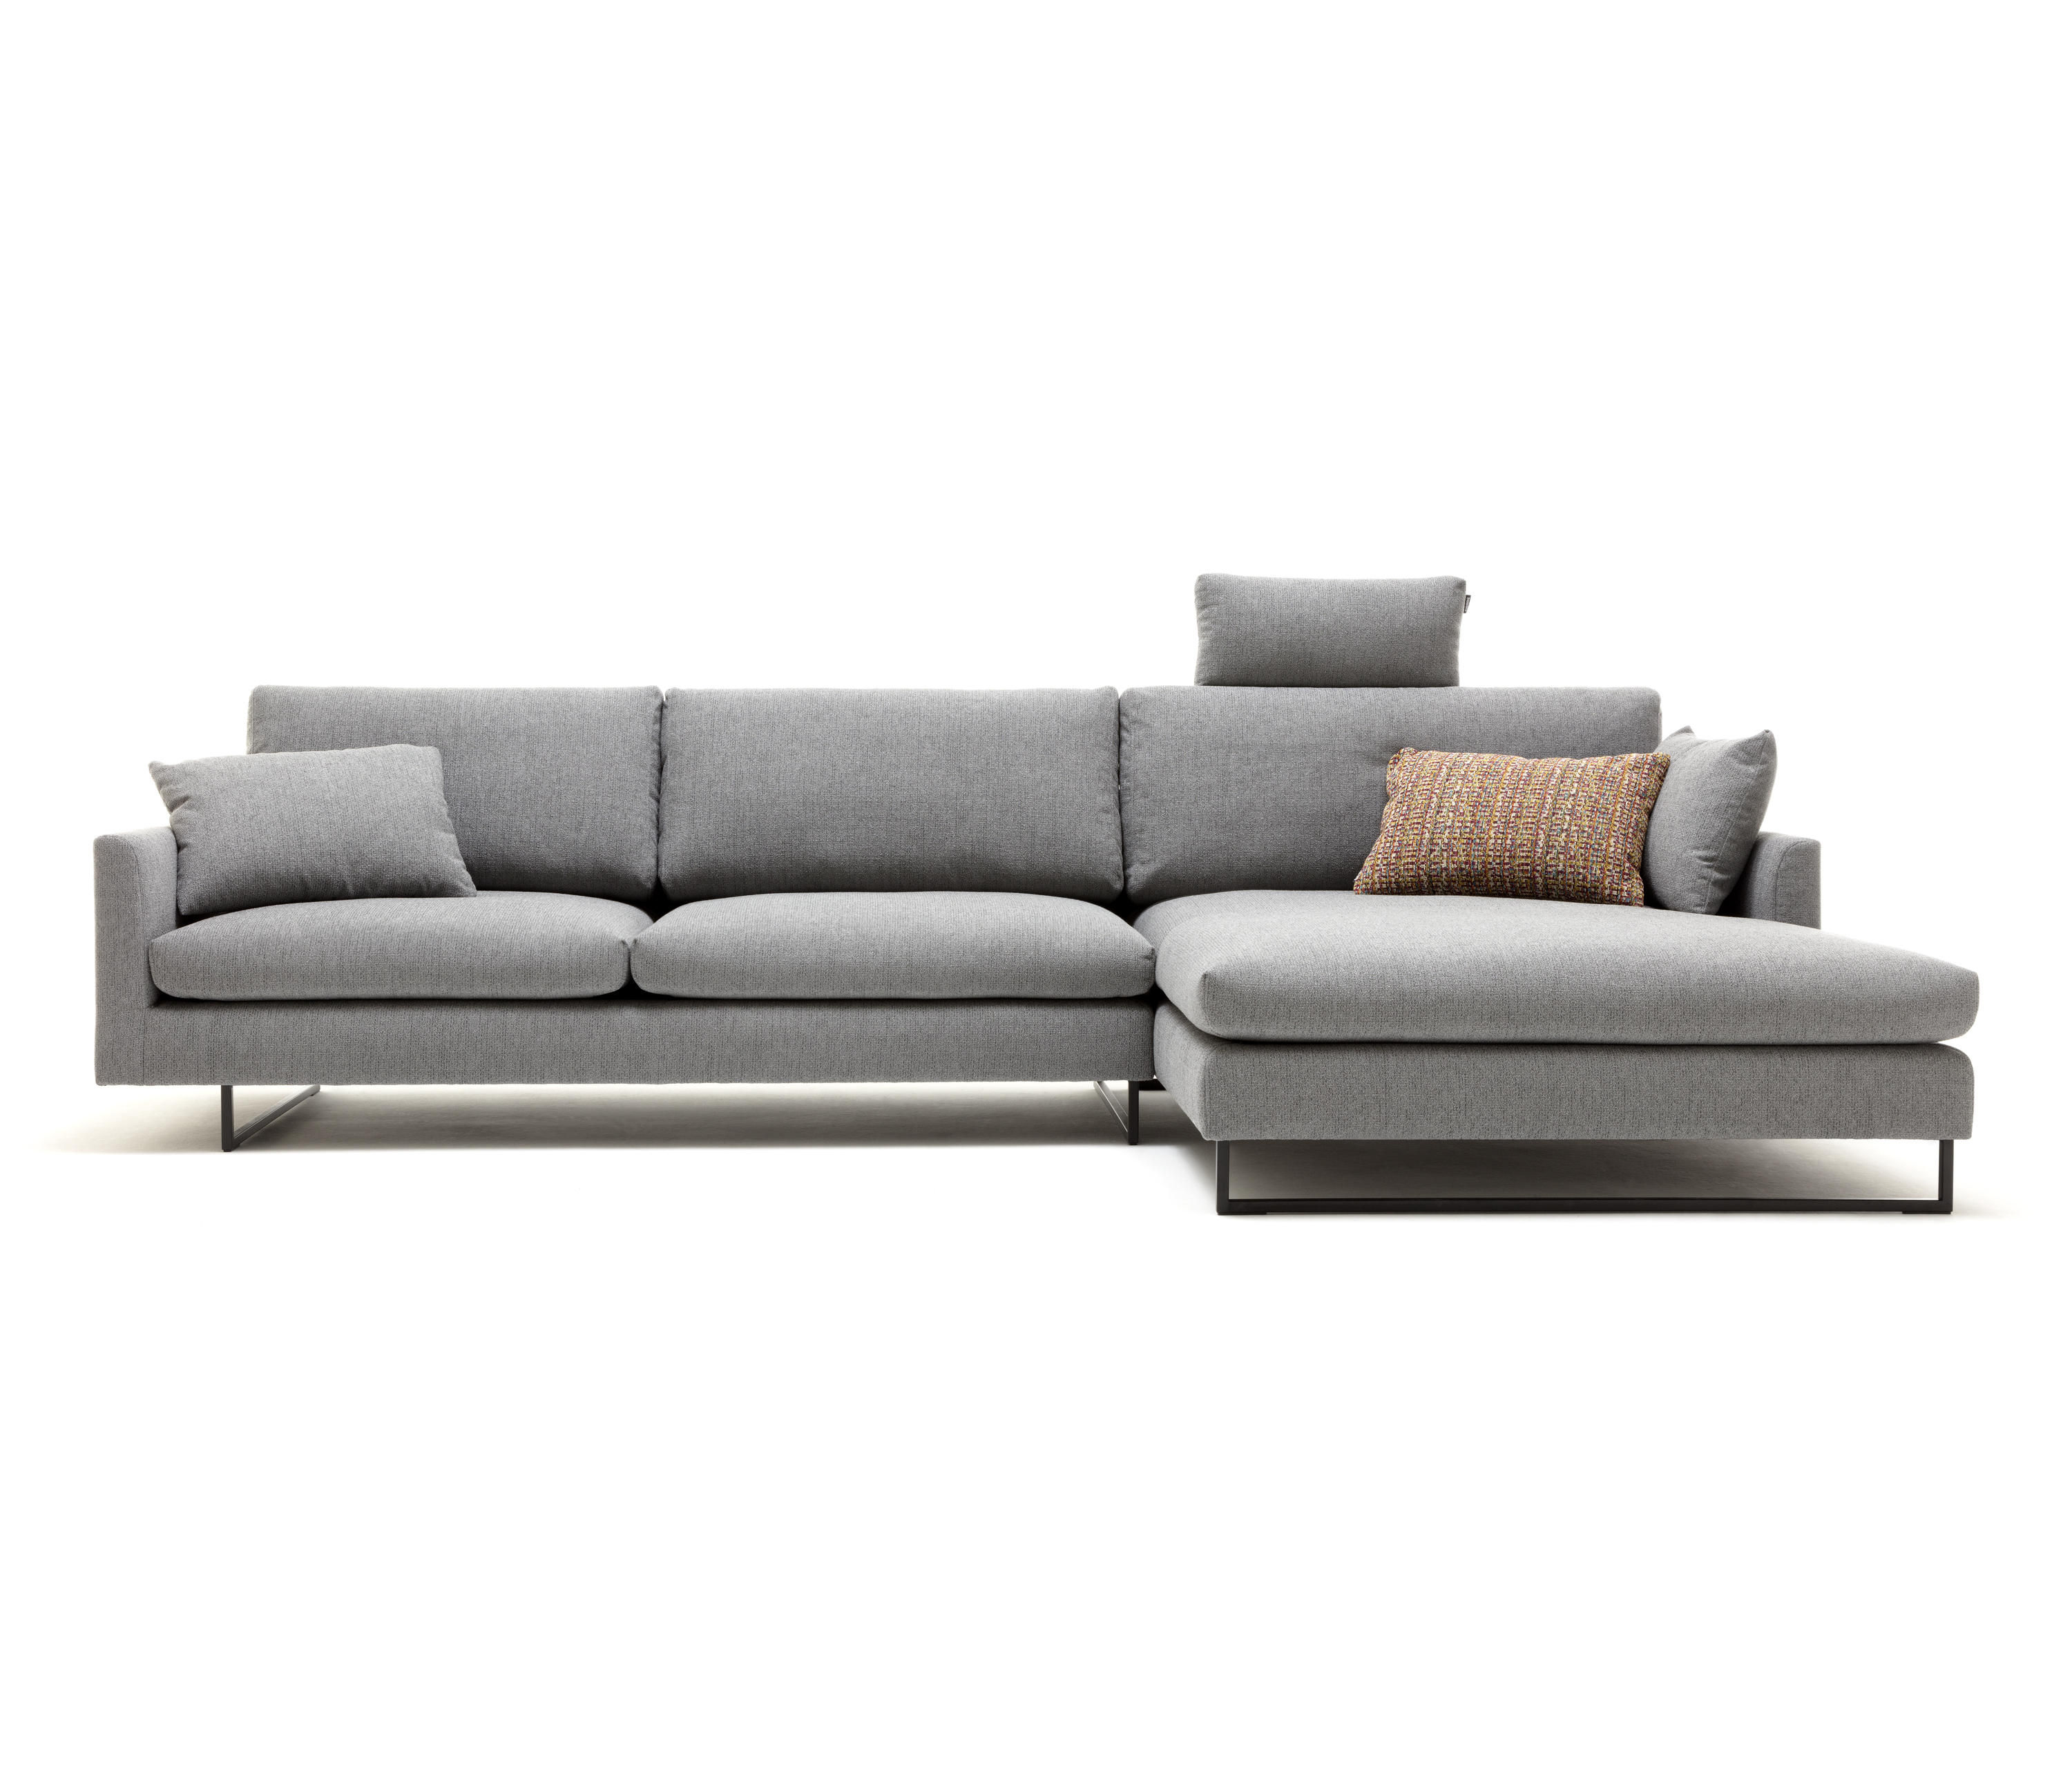 Futon München Freistil 134 Sofas From Freistil Architonic